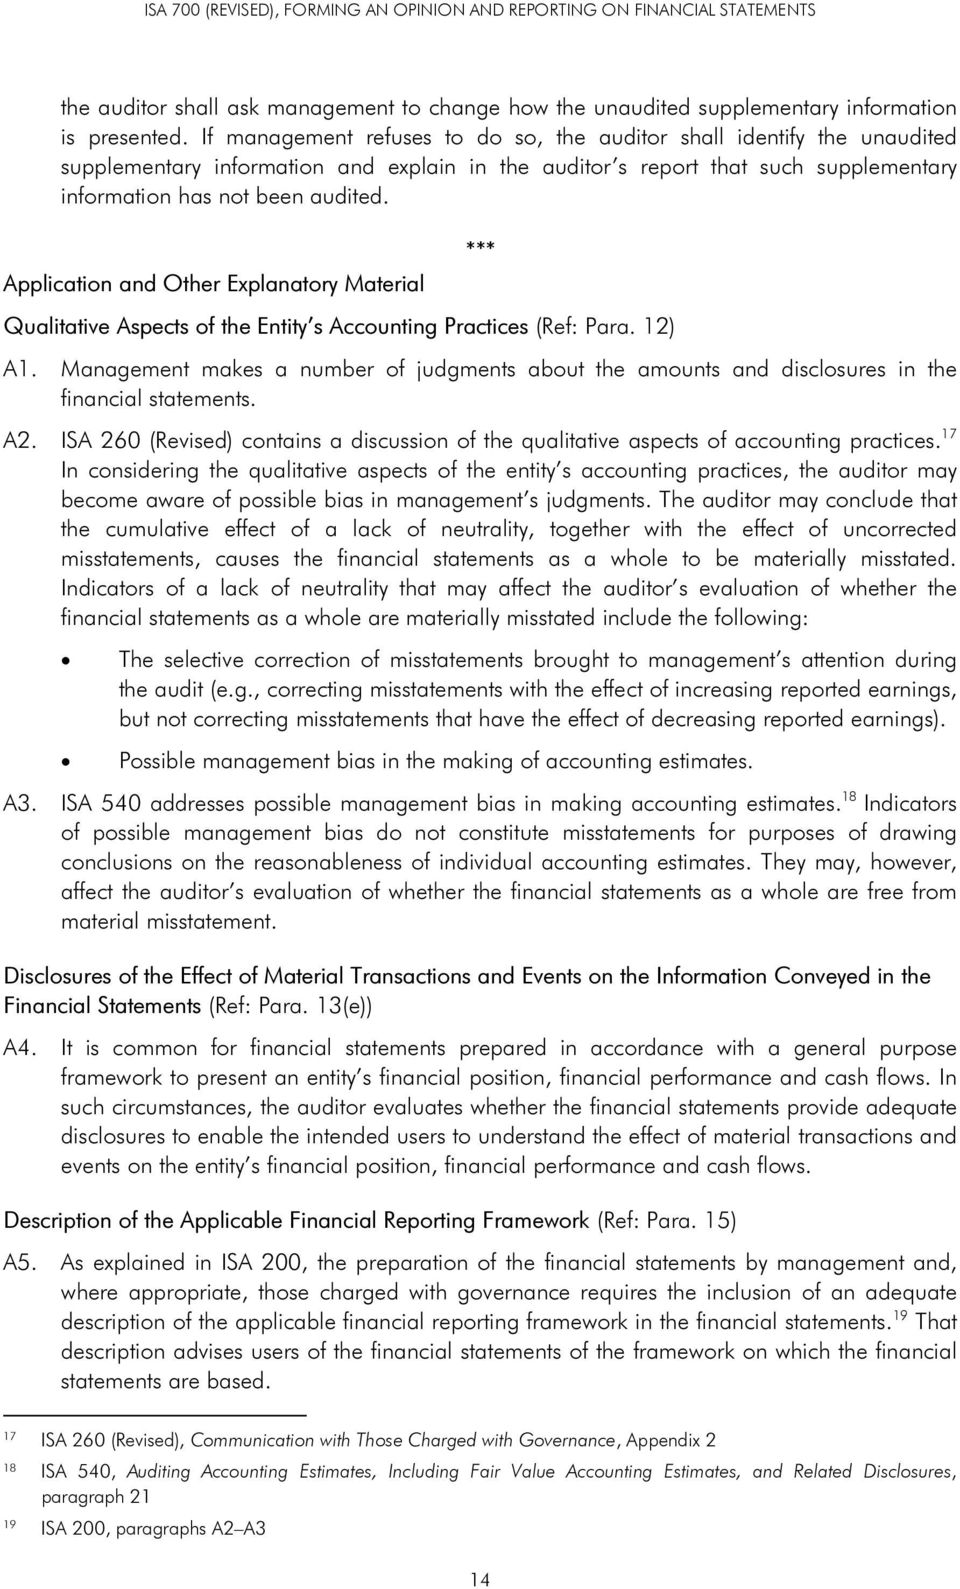 Application and Other Explanatory Material Qualitative Aspects of the Entity s Accounting Practices (Ref: Para. 12) *** A1.